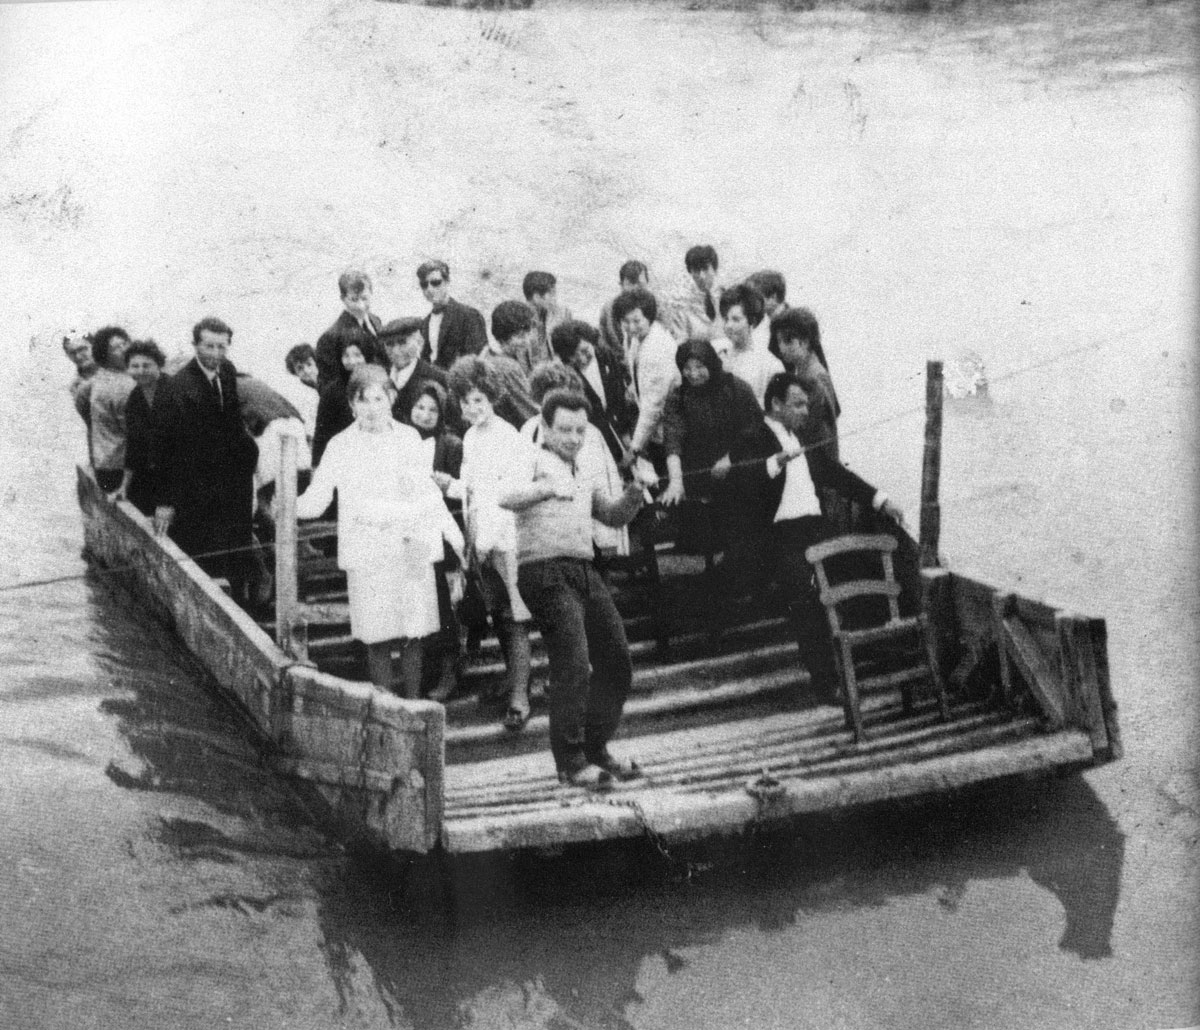 Fig. 2. Photograph from the archive of Panagiotis Gerokostas (1961), depicting a perataria on the river Peneios. Locals from the village of Nome, cross over by raft to the village of Pedine on the other side.